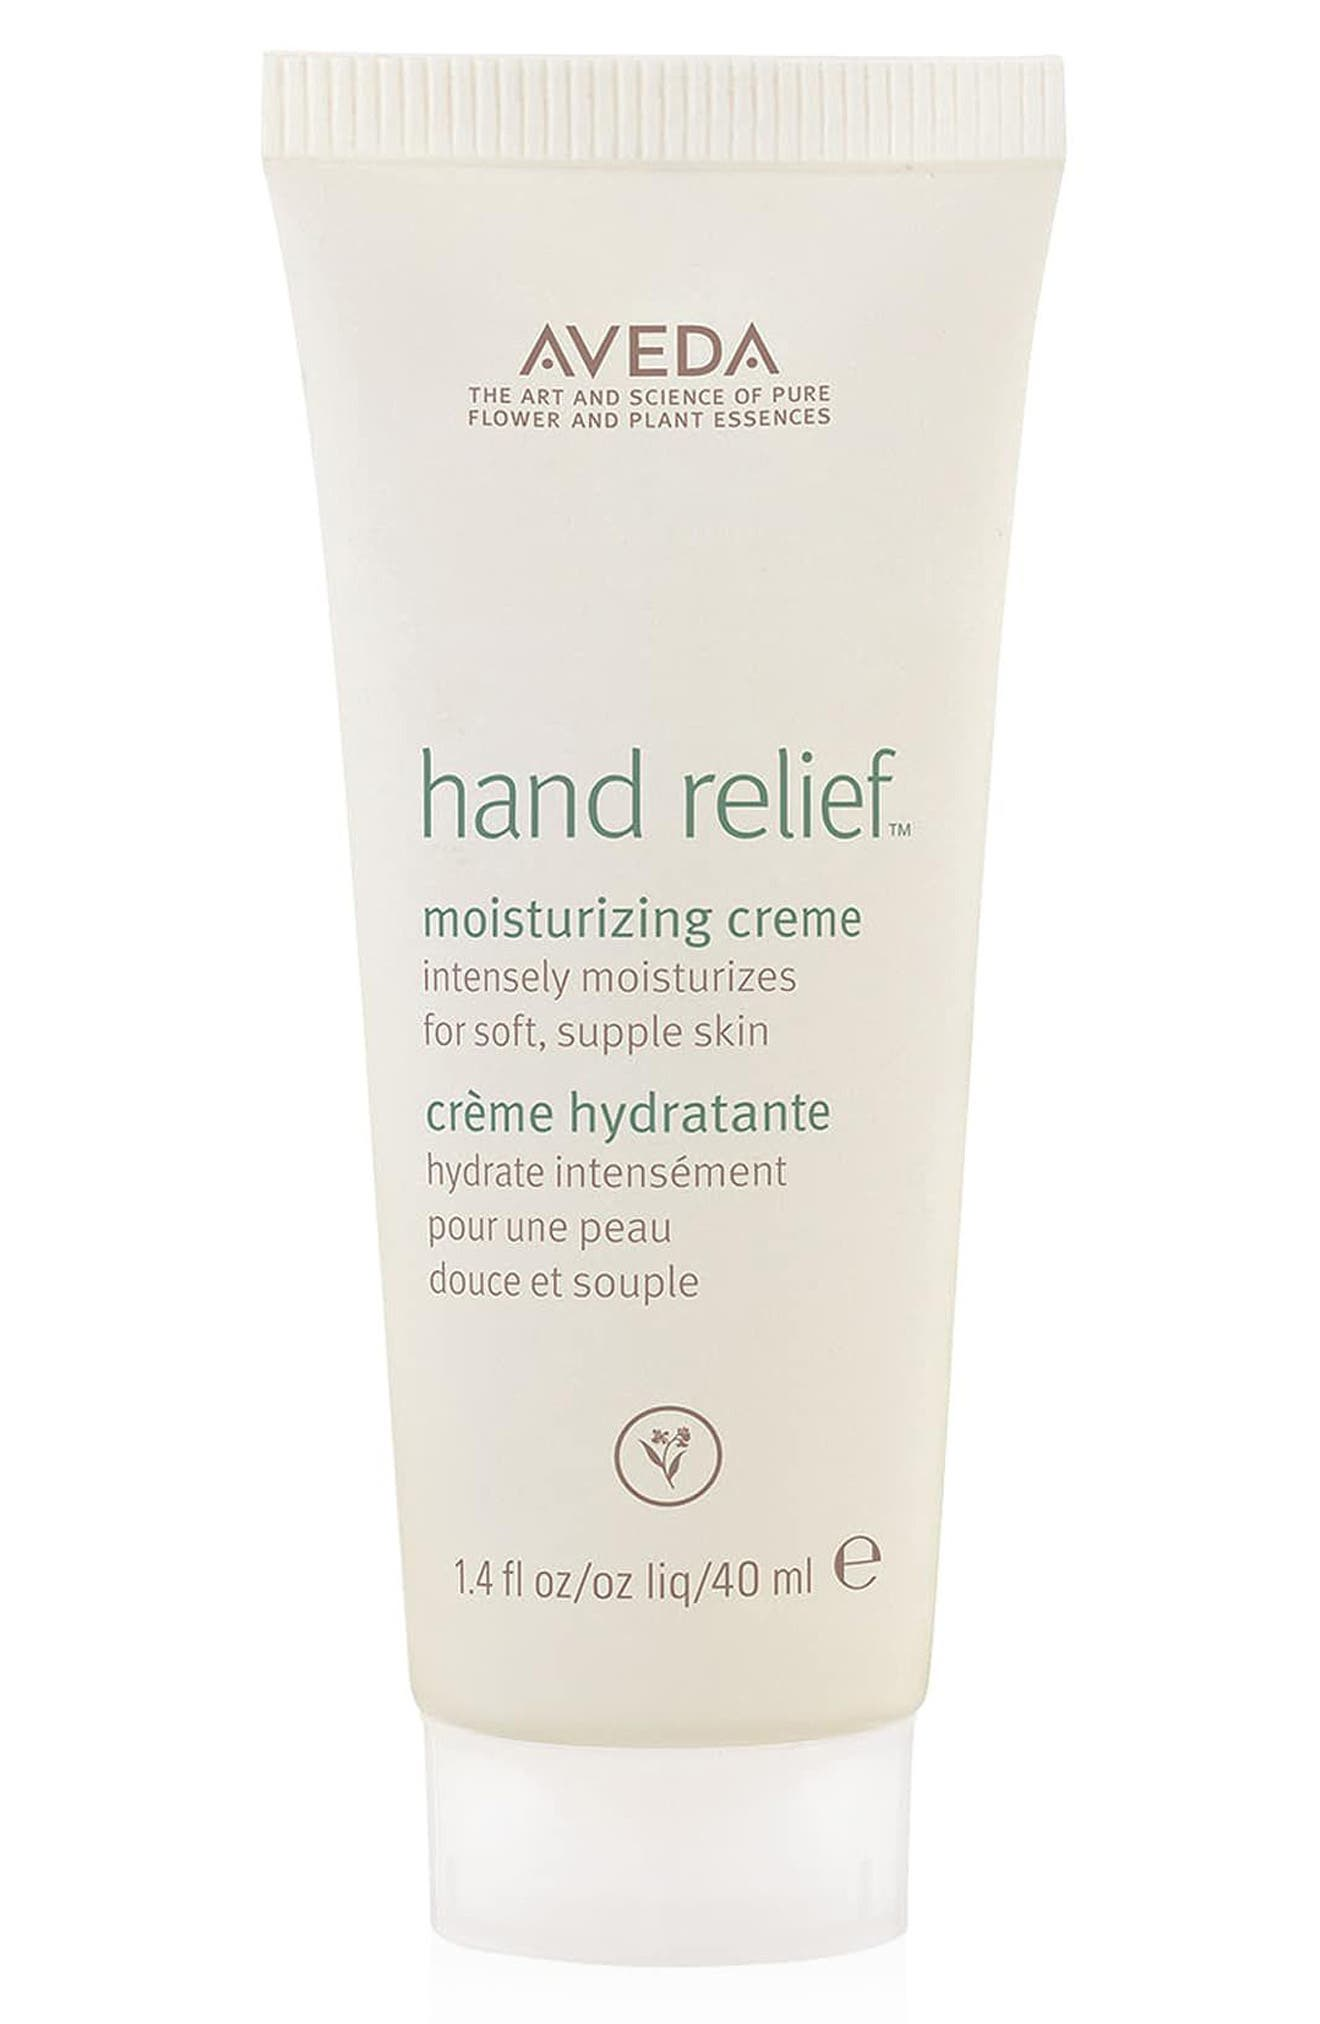 Alternate Image 1 Selected - Aveda 'hand relief™' Hand Cream (1.4 oz.)